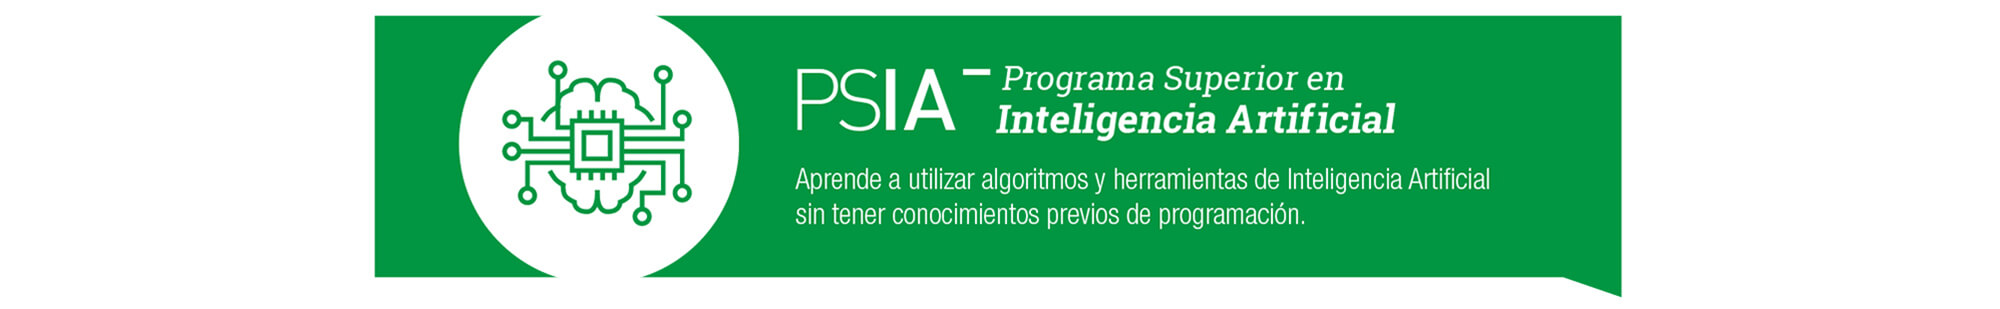 programa_superior_inteligencia_artificial